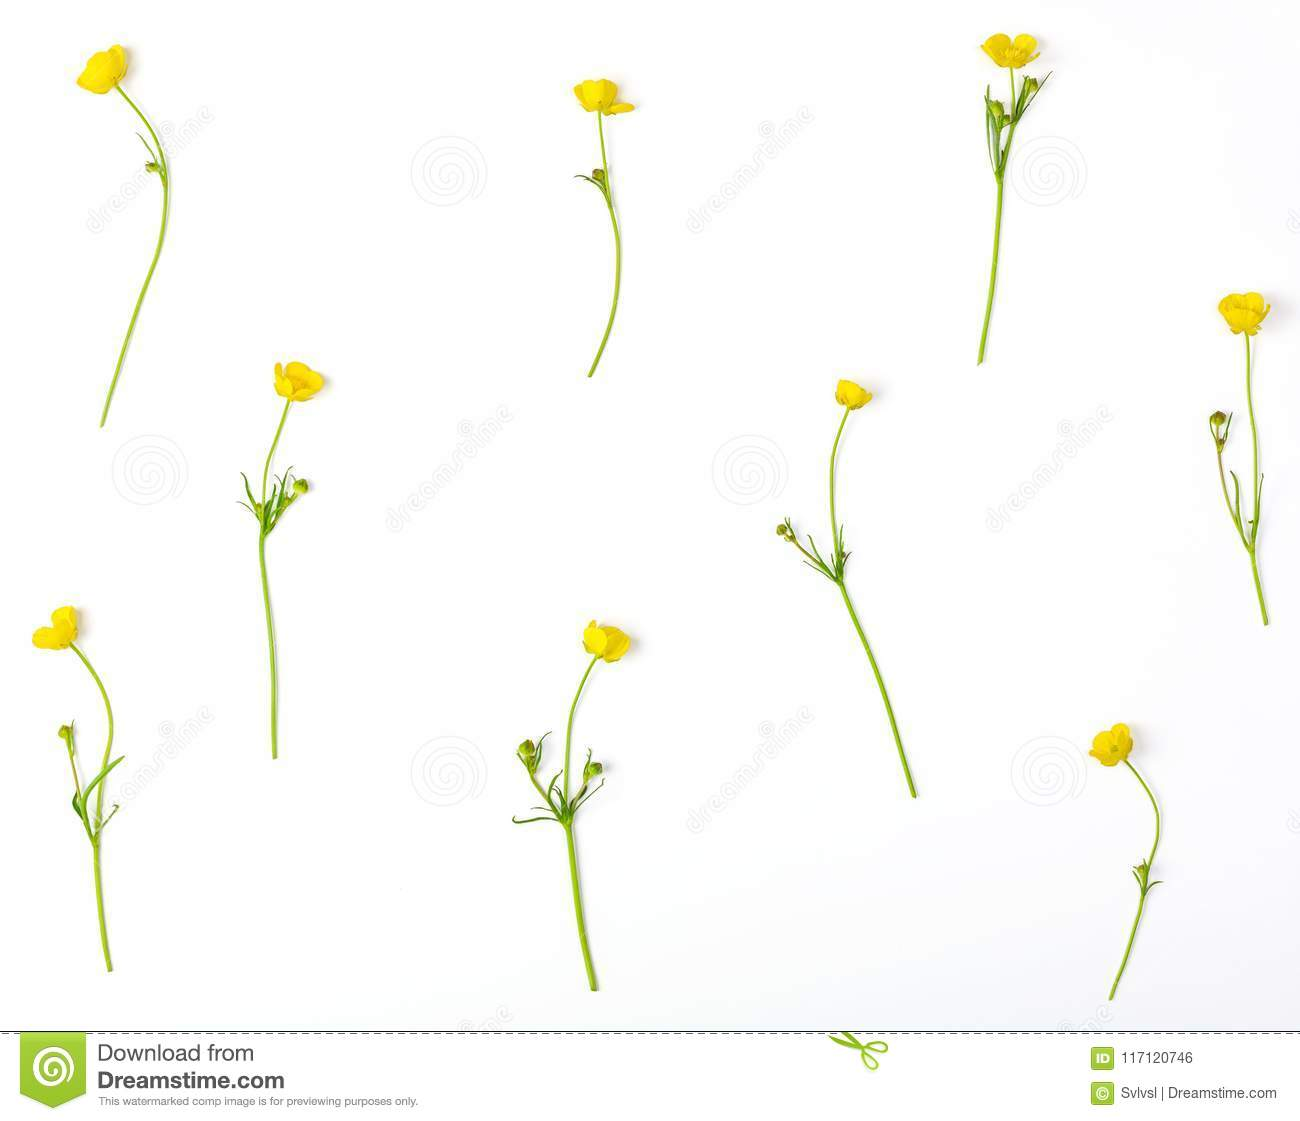 Floral pattern made of yellow buttercups flowers isolated on white background. Flat lay.